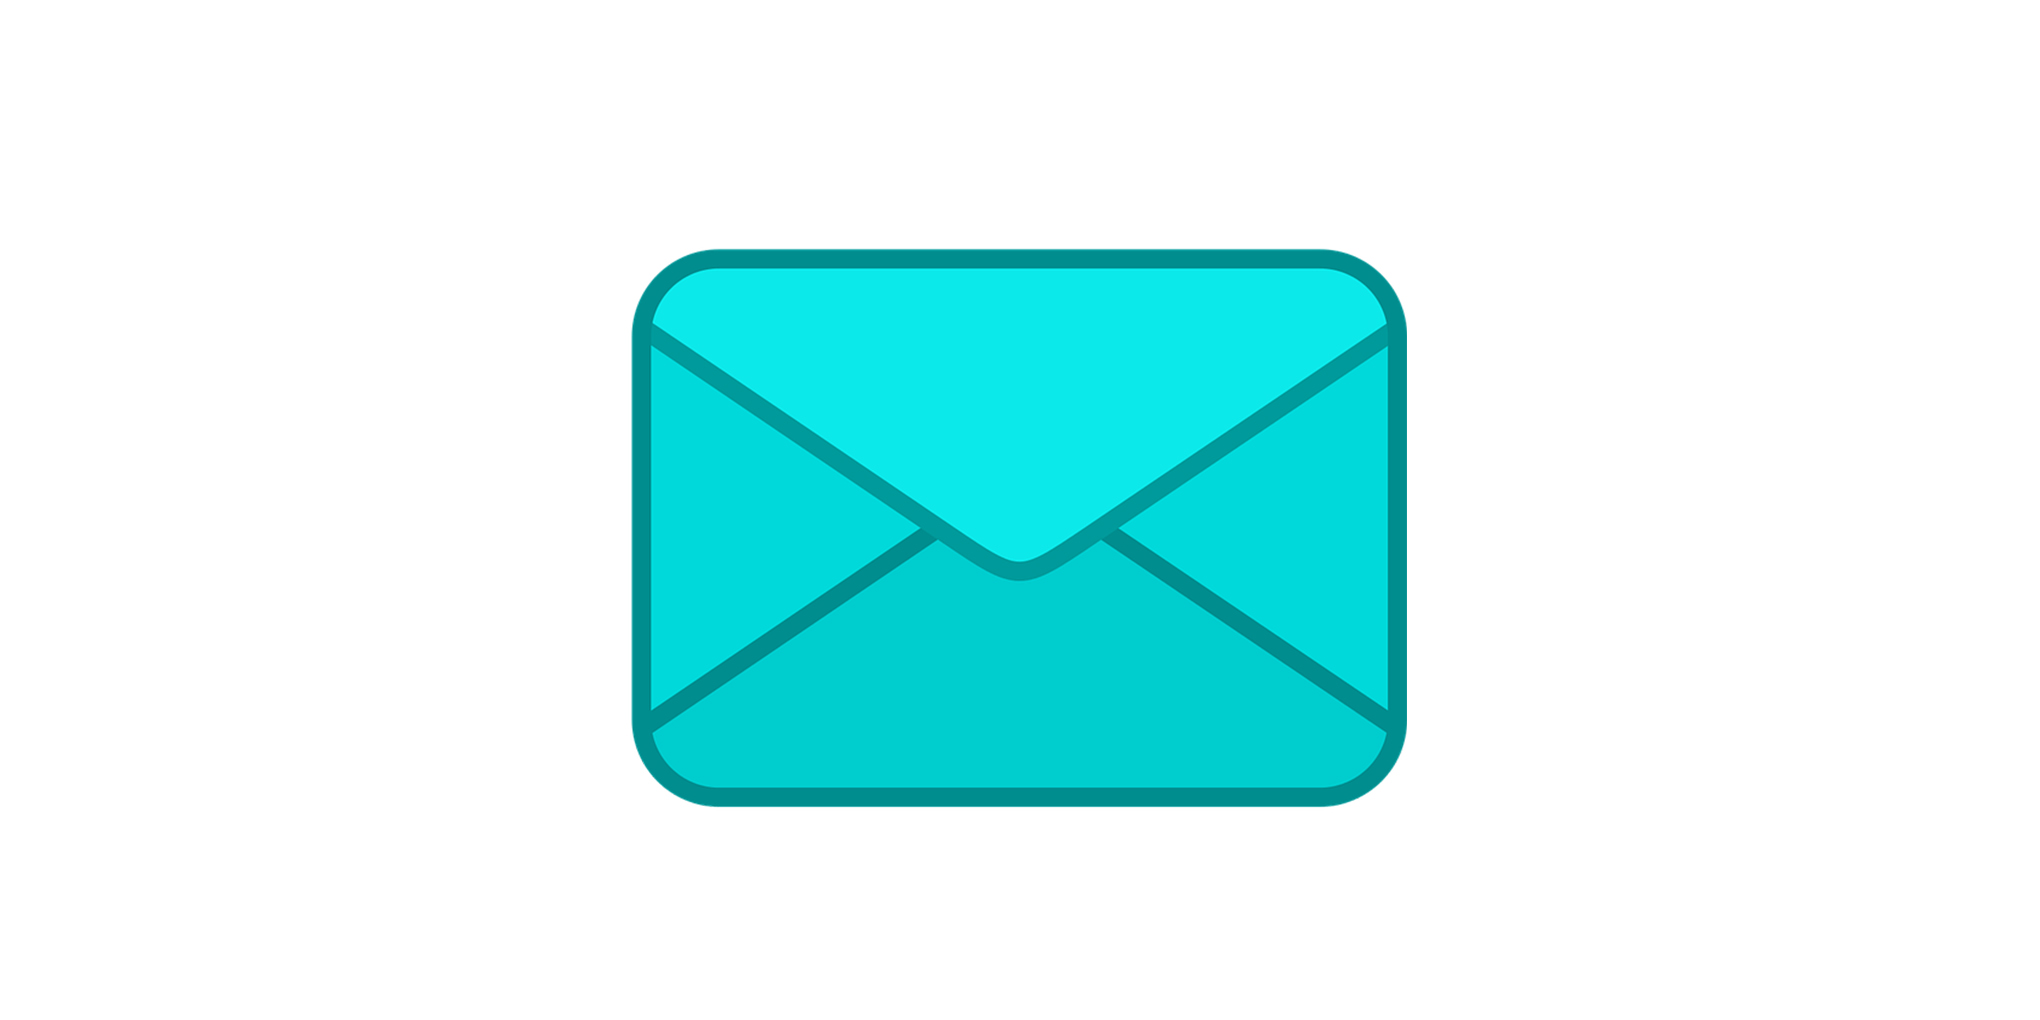 Shop-How-can-you-subscribe-or-unsubscribe- to-the-newsletter